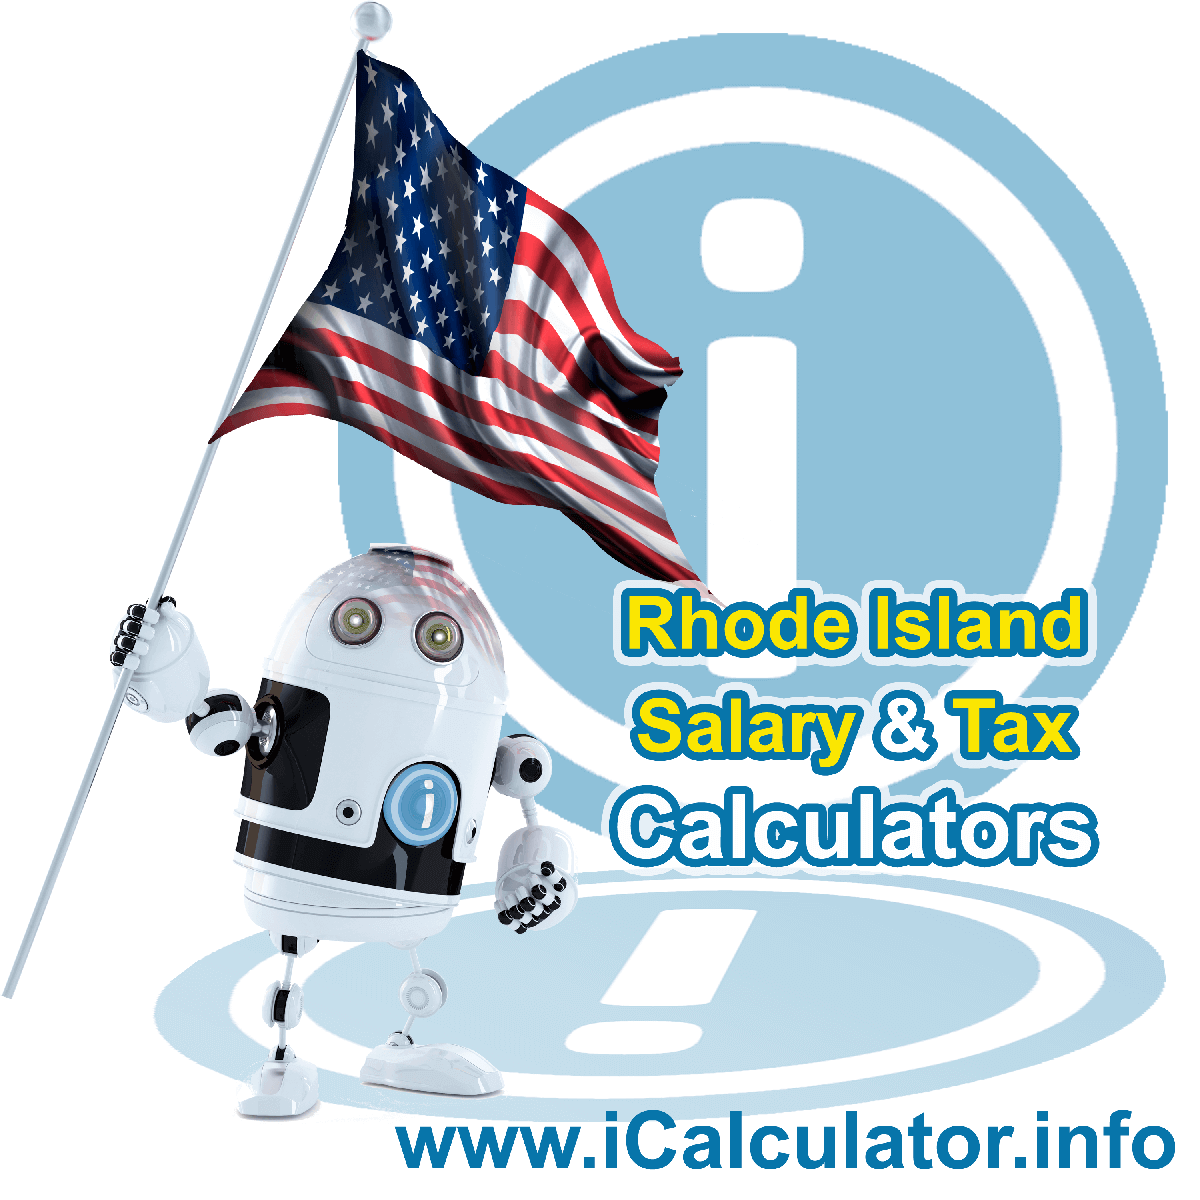 Rhode Island Salary Calculator 2019 | iCalculator | The Rhode Island Salary Calculator allows you to quickly calculate your salary after tax including Rhode Island State Tax, Federal State Tax, Medicare Deductions, Social Security, Capital Gains and other income tax and salary deductions complete with supporting Rhode Island state tax tables